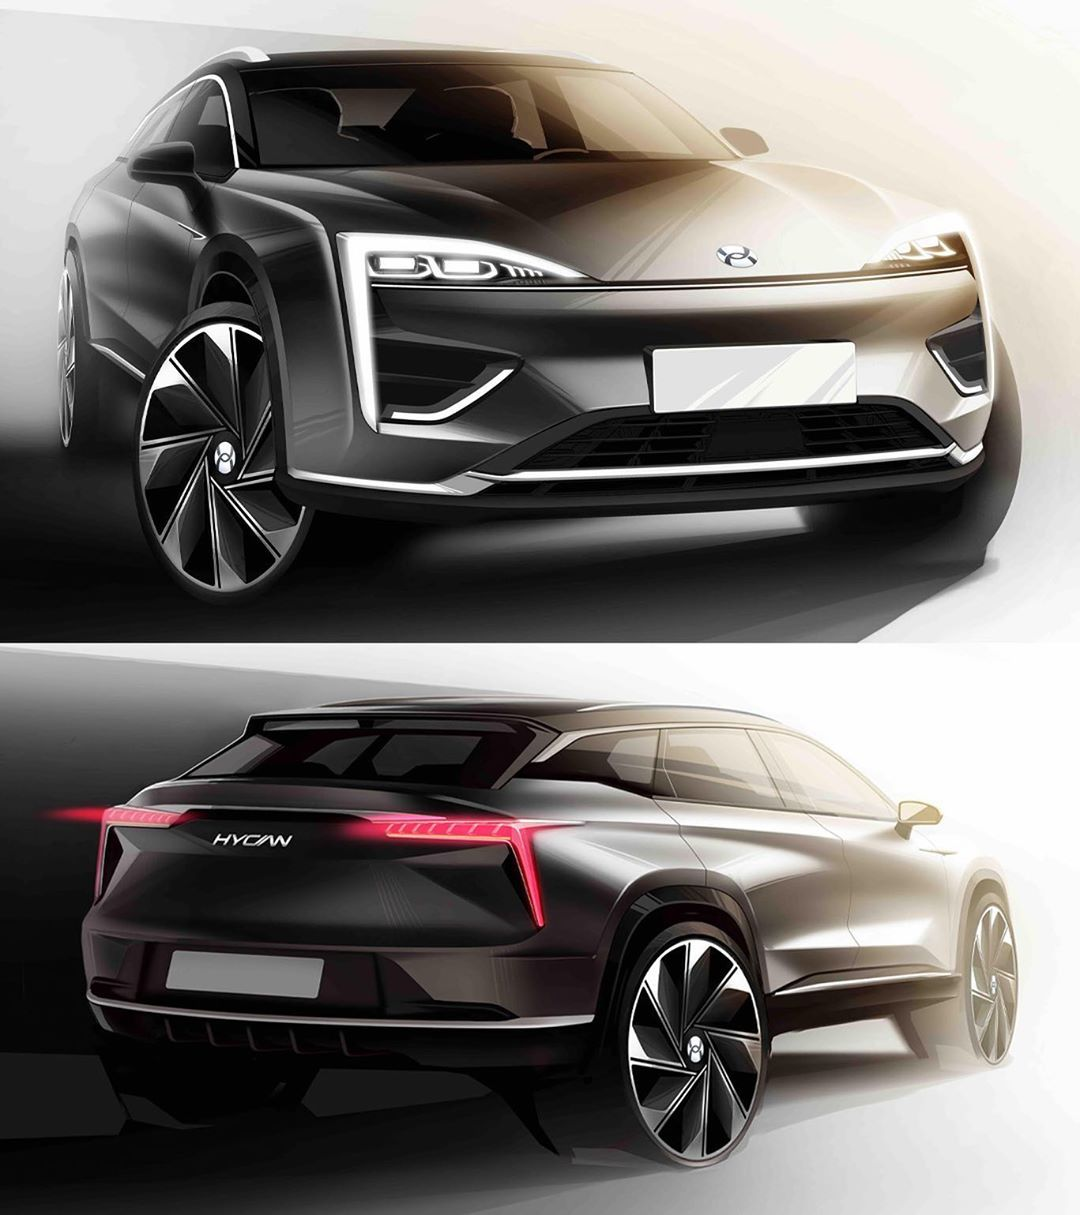 Car Design World On Instagram 2020 Hycan 007 Official Photos And Sketches Electric Vehicle By Joint Venture Nio Gac China In 2020 Car Design Car Automotive Design